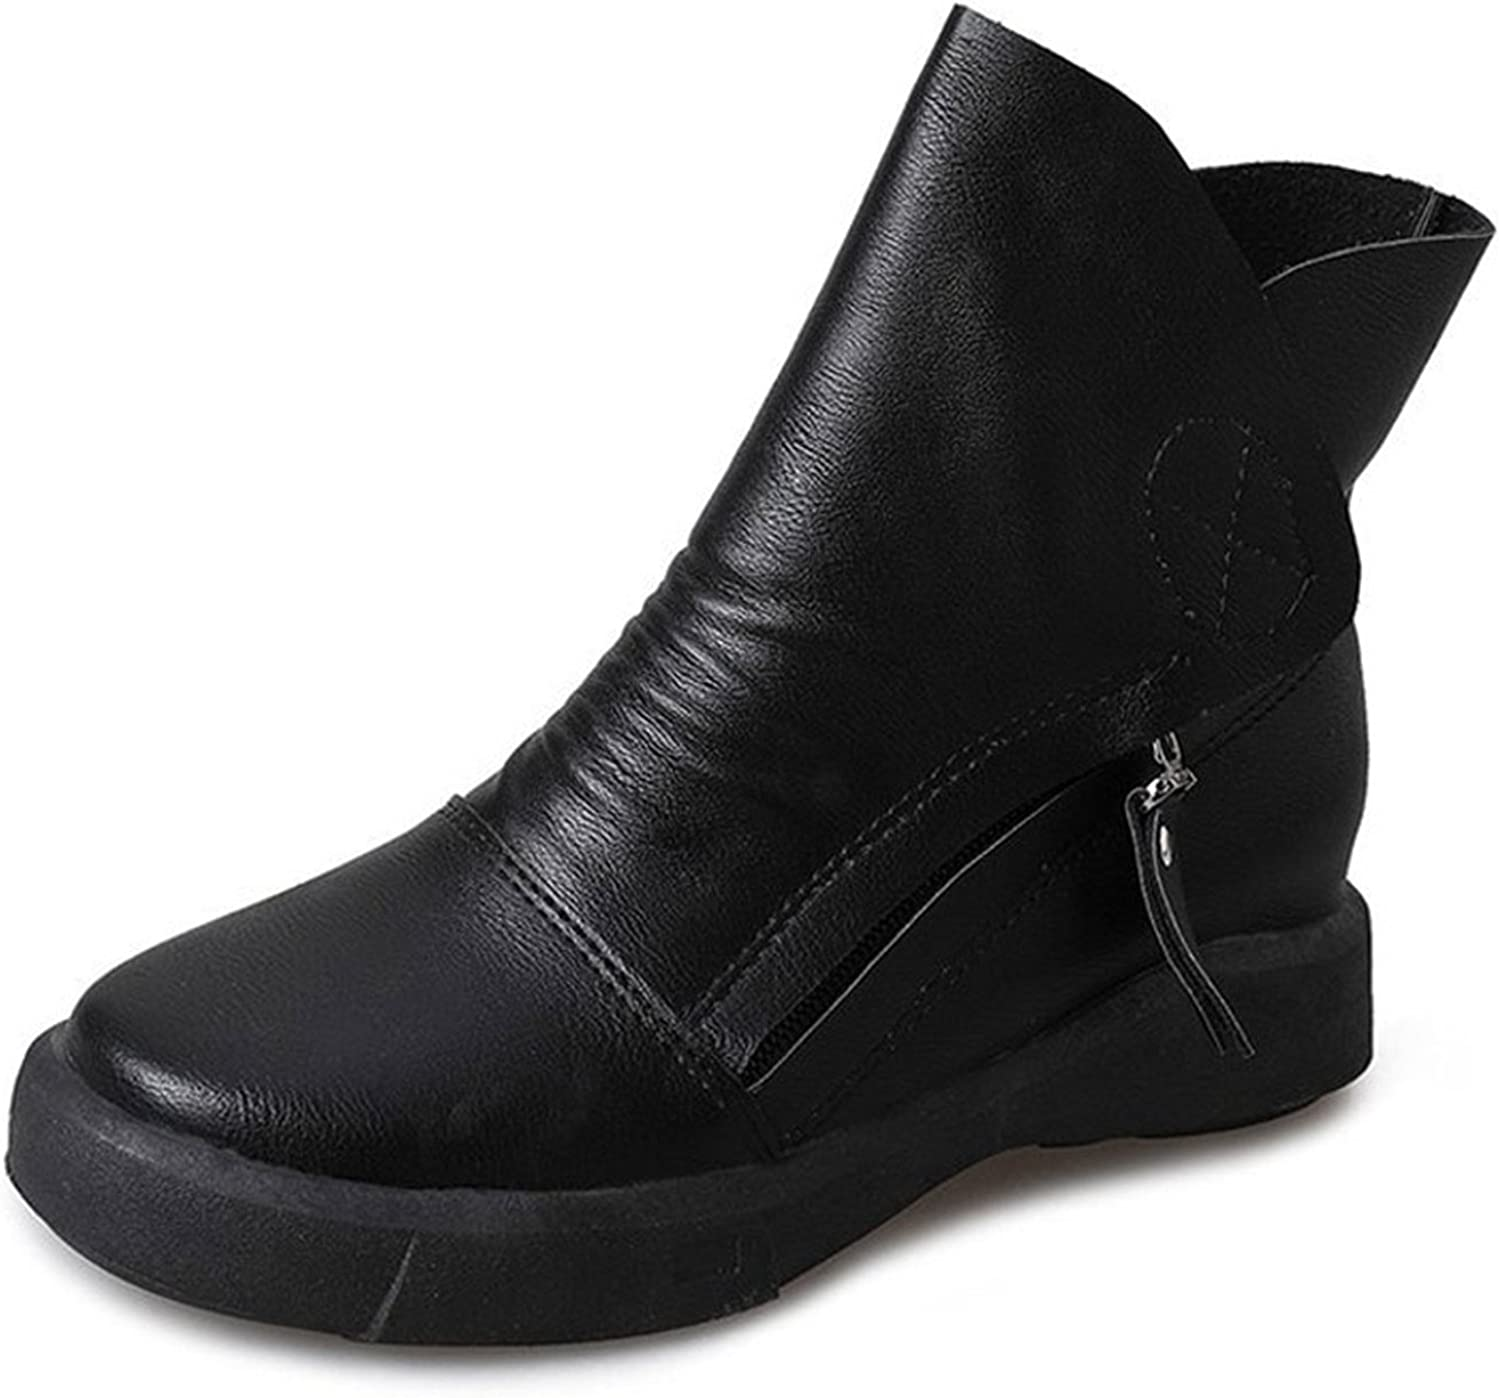 Dahanyi Stylish New Winter Boots Women shoes Woman Double Zipper Flat Platform shoes Female British Retro Short Ankle Boots